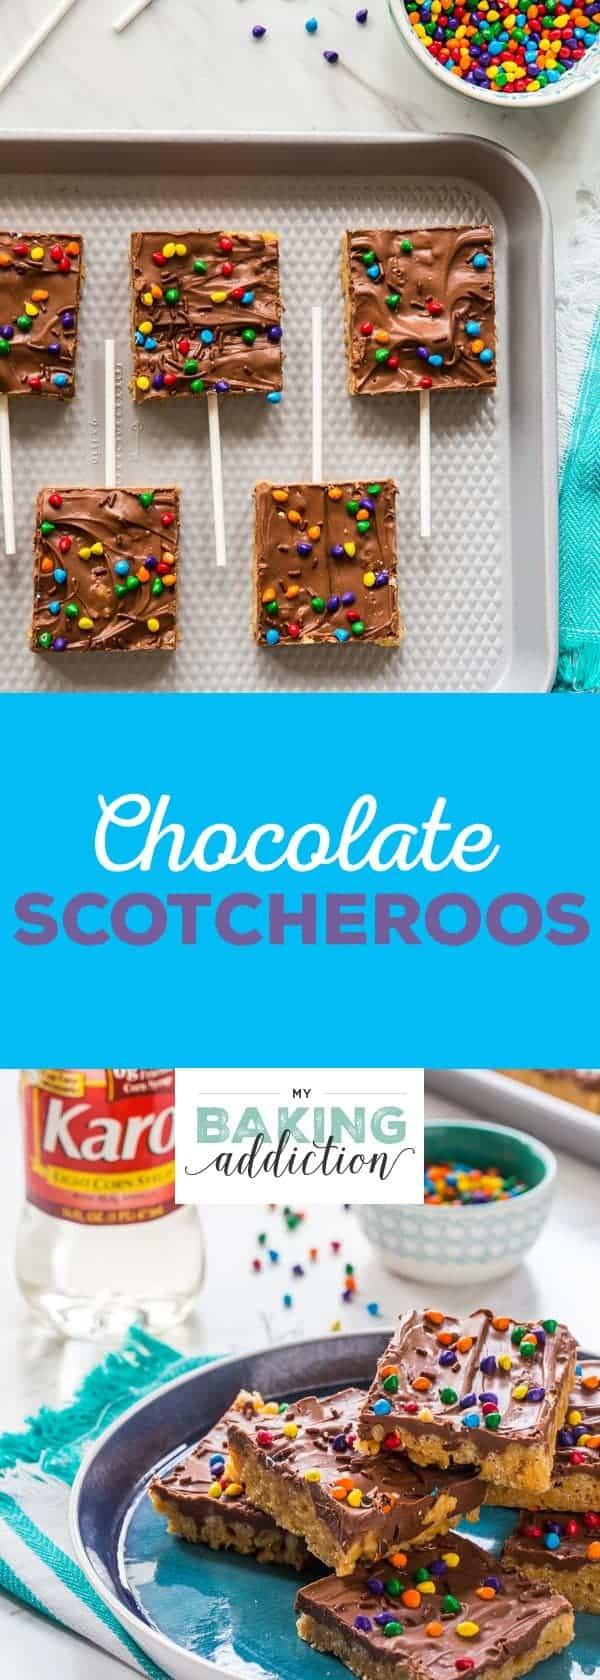 Chocolate Scotcheroos combine peanut butter, crispy rice cereal, and chocolate into one delicious treat. A perfect recipe to make with your kiddos! So fun!